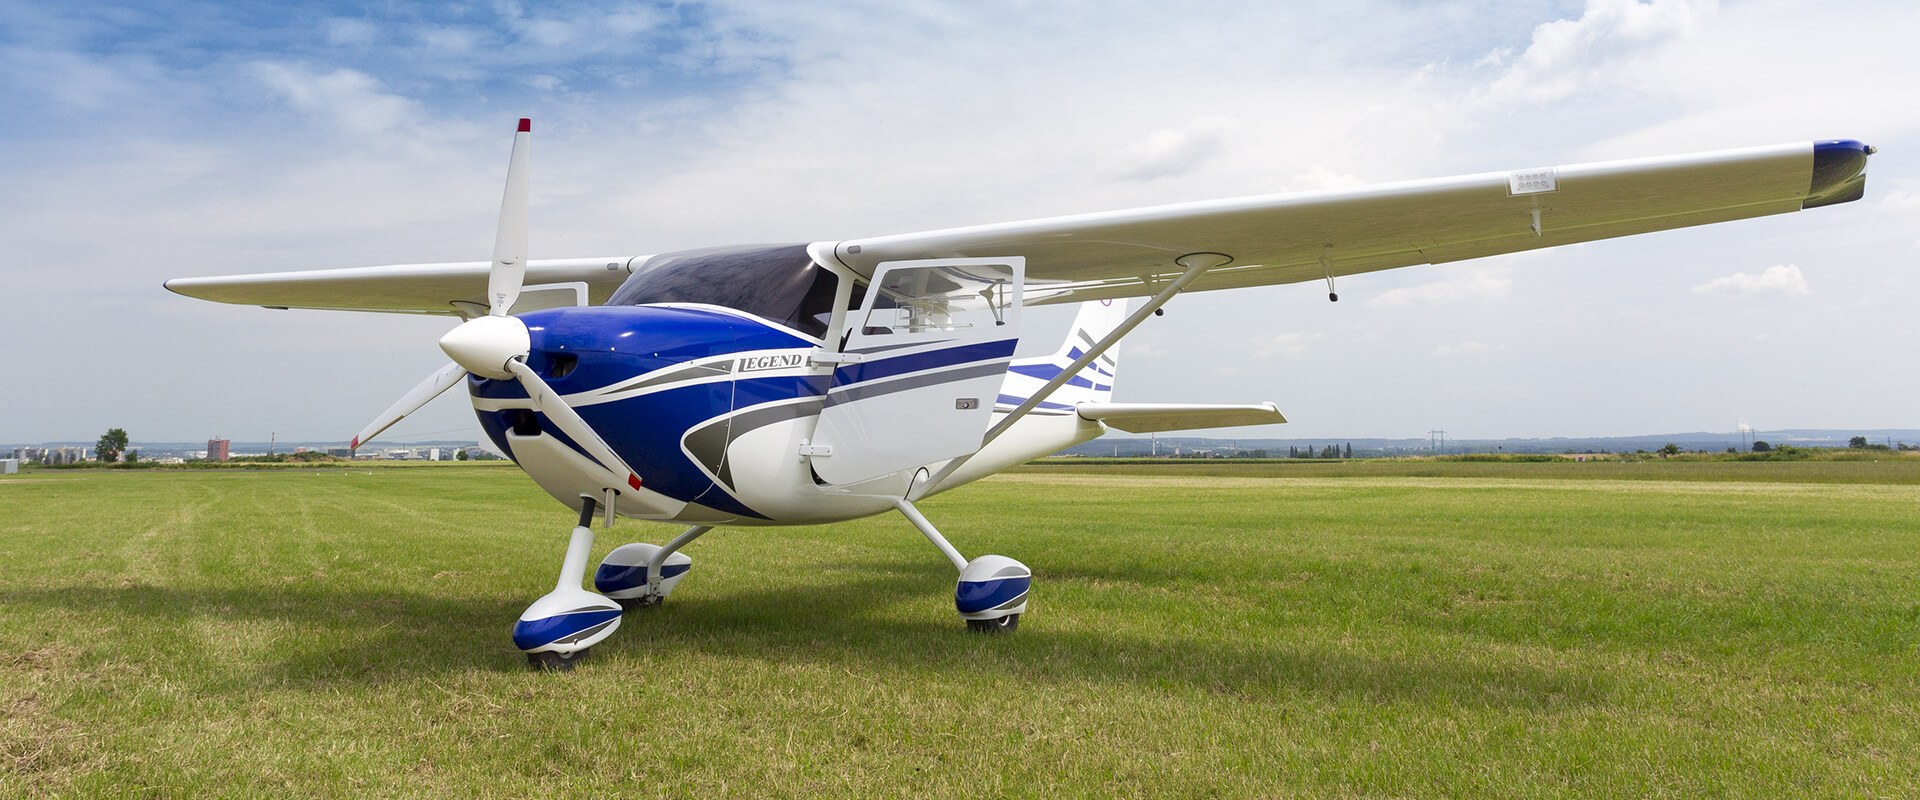 Light sport LEGEND 600 aircraft (LSA) - Maximum Take Off Weight: 600 kg